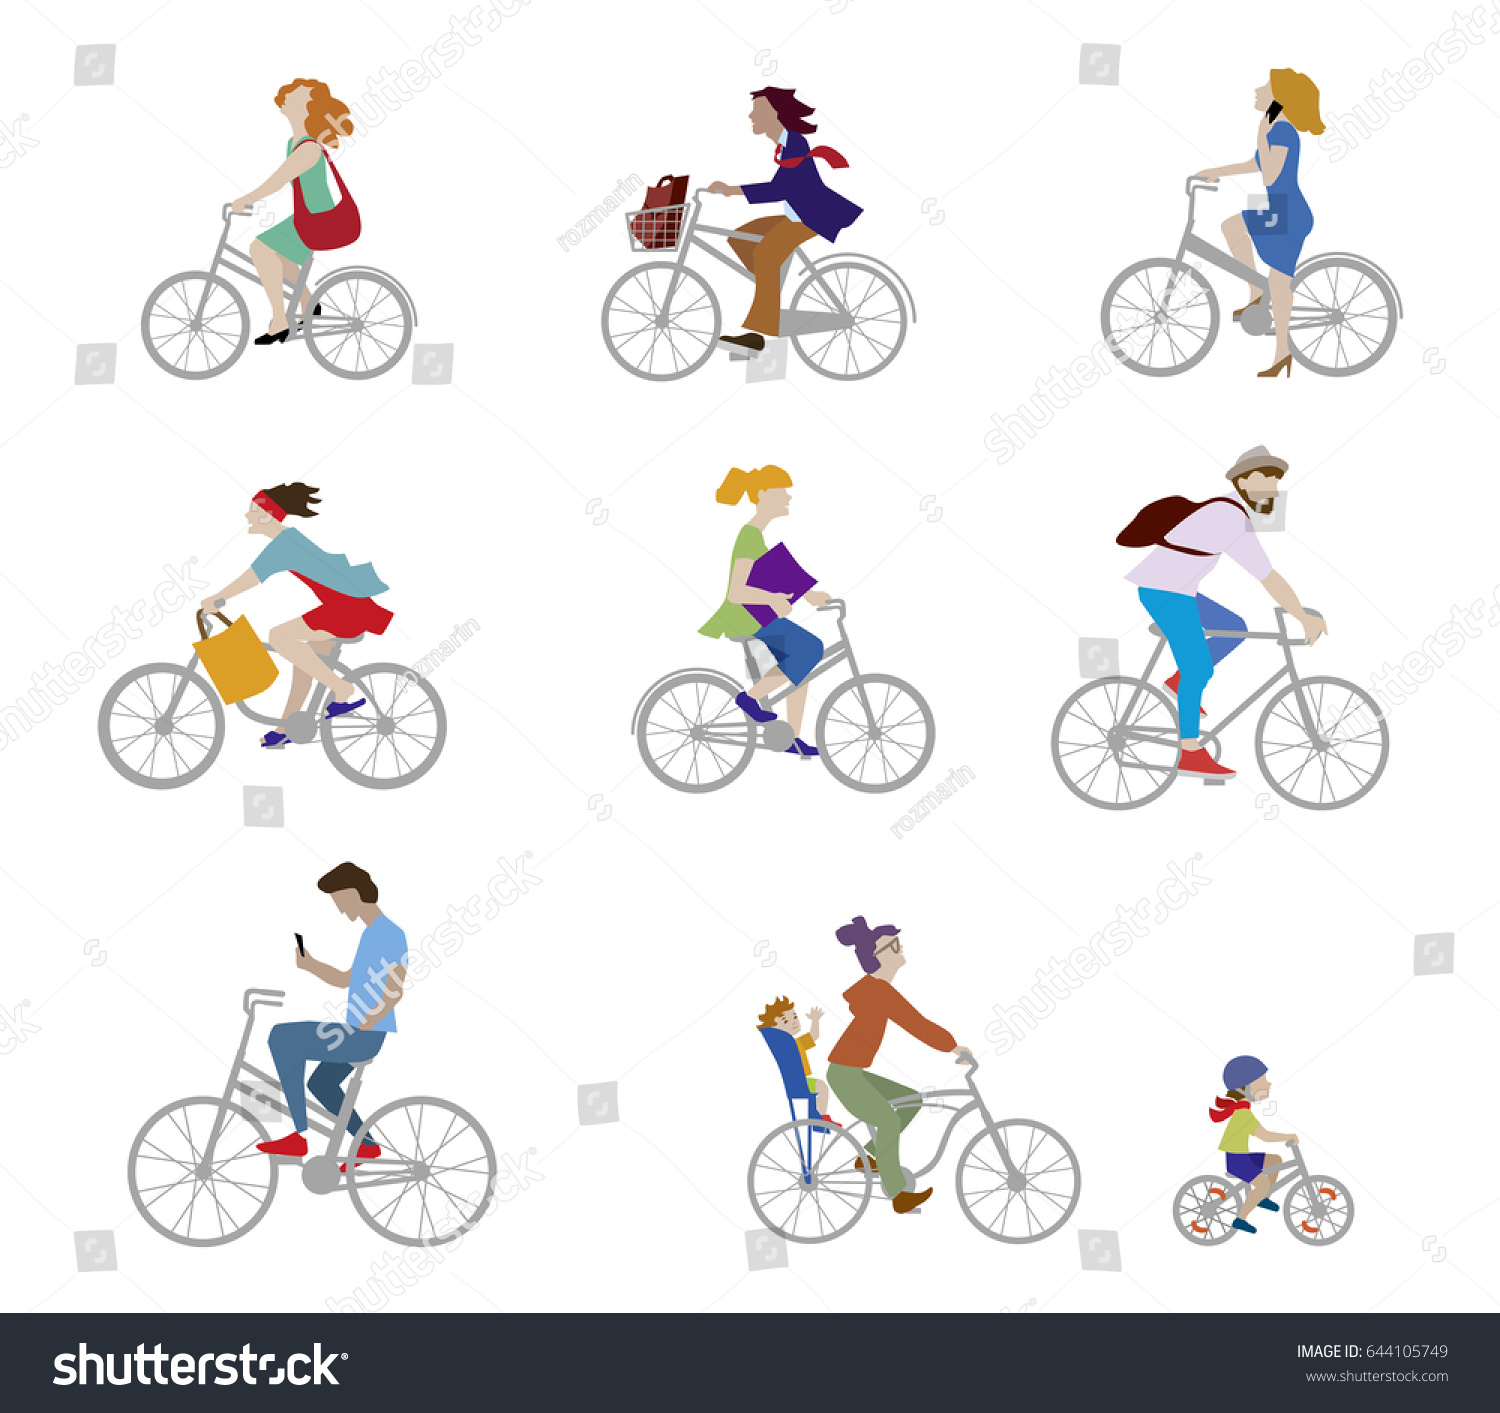 how to ride a bicycle for adults